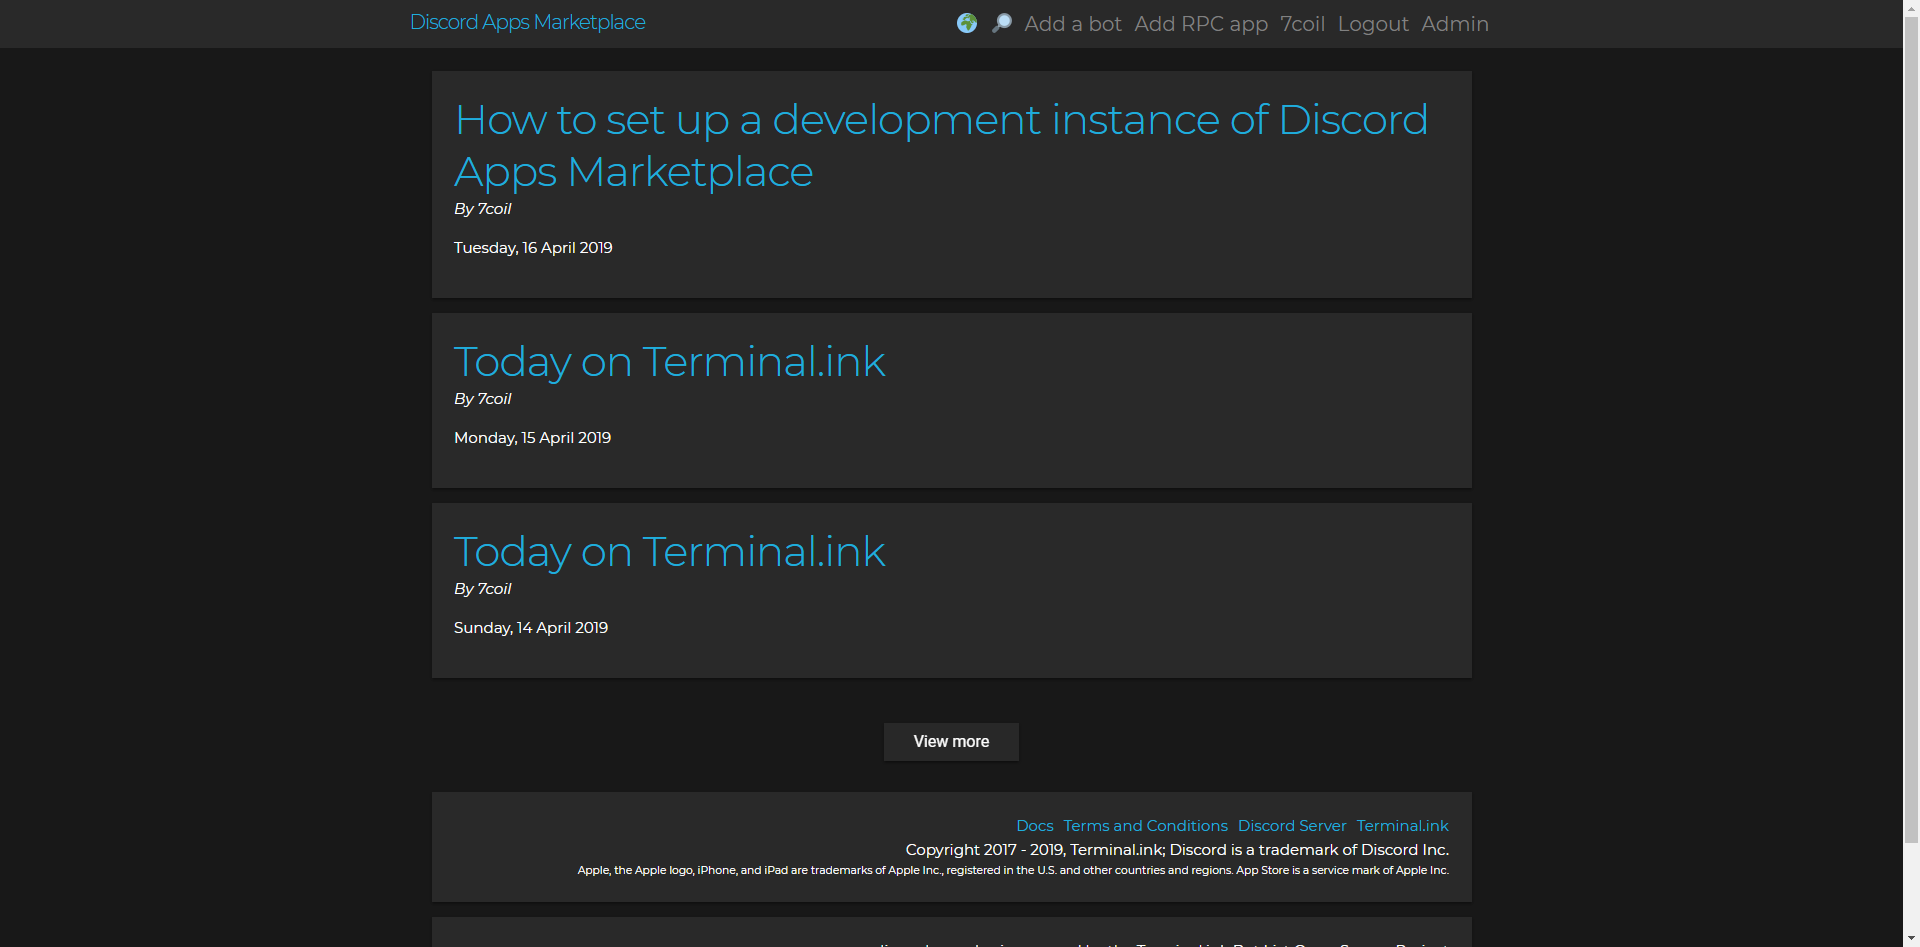 Today on Terminal.ink... and more!